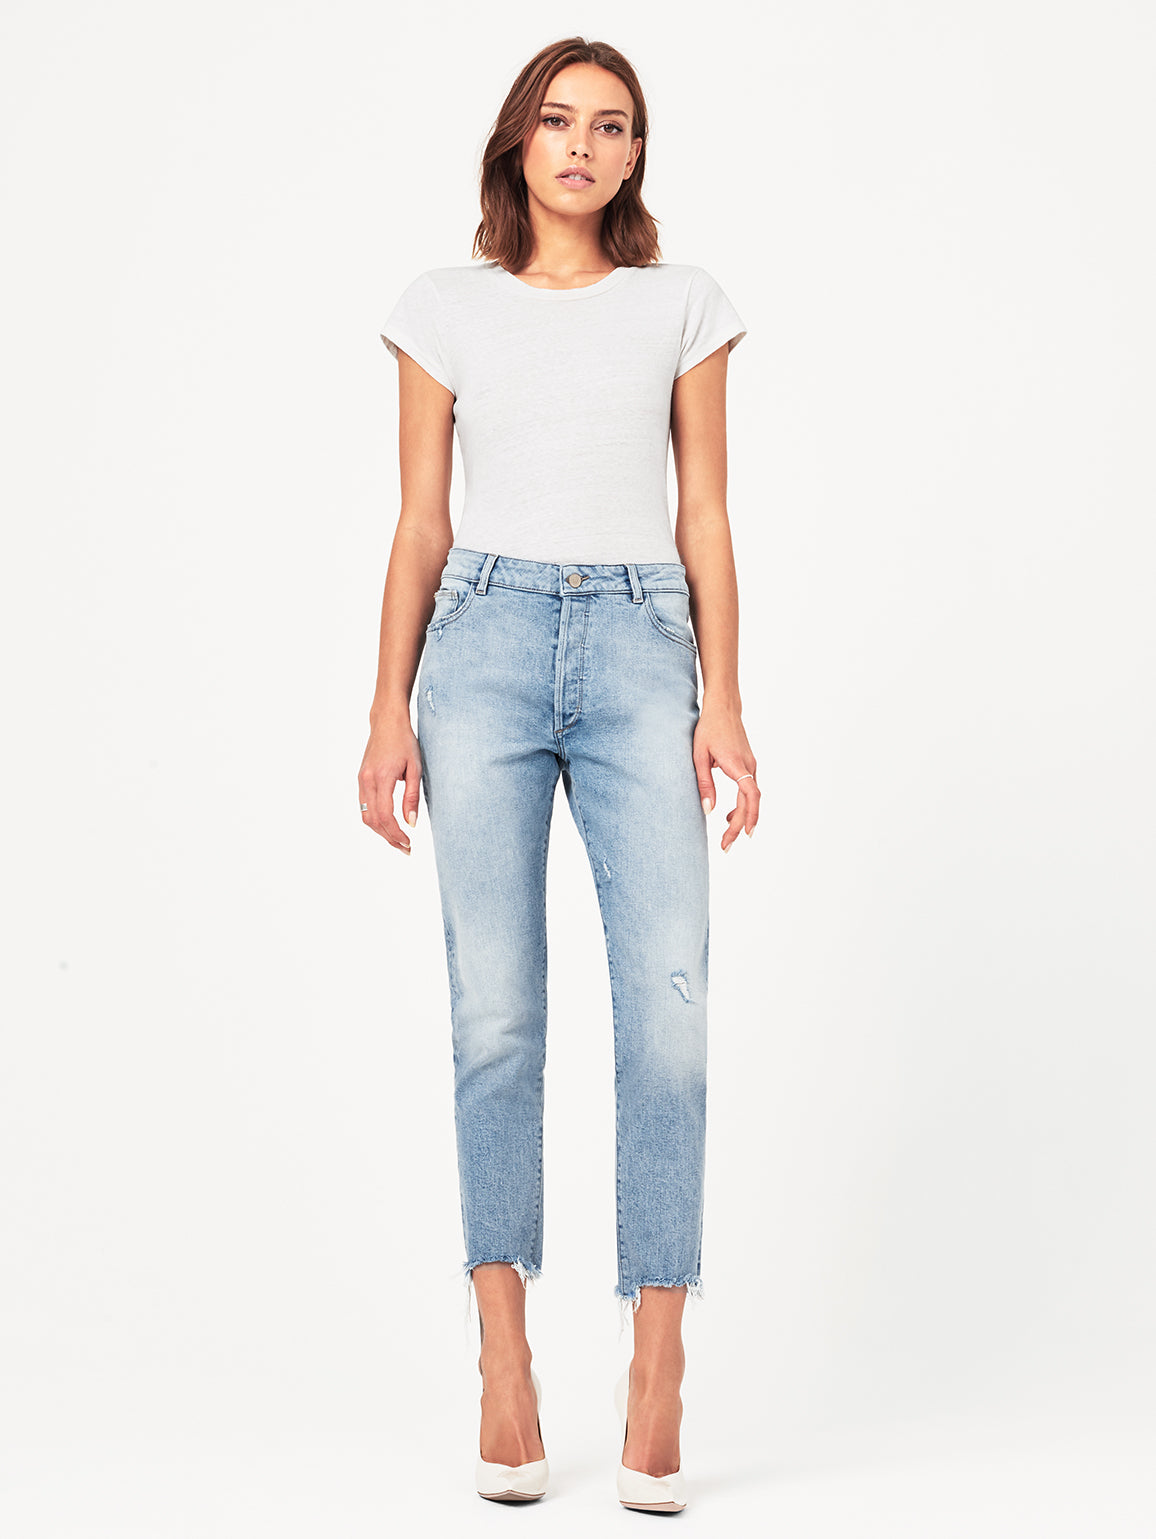 Bella Crop High Rise Vintage Slim | Super Bleach DL 1961 Denim